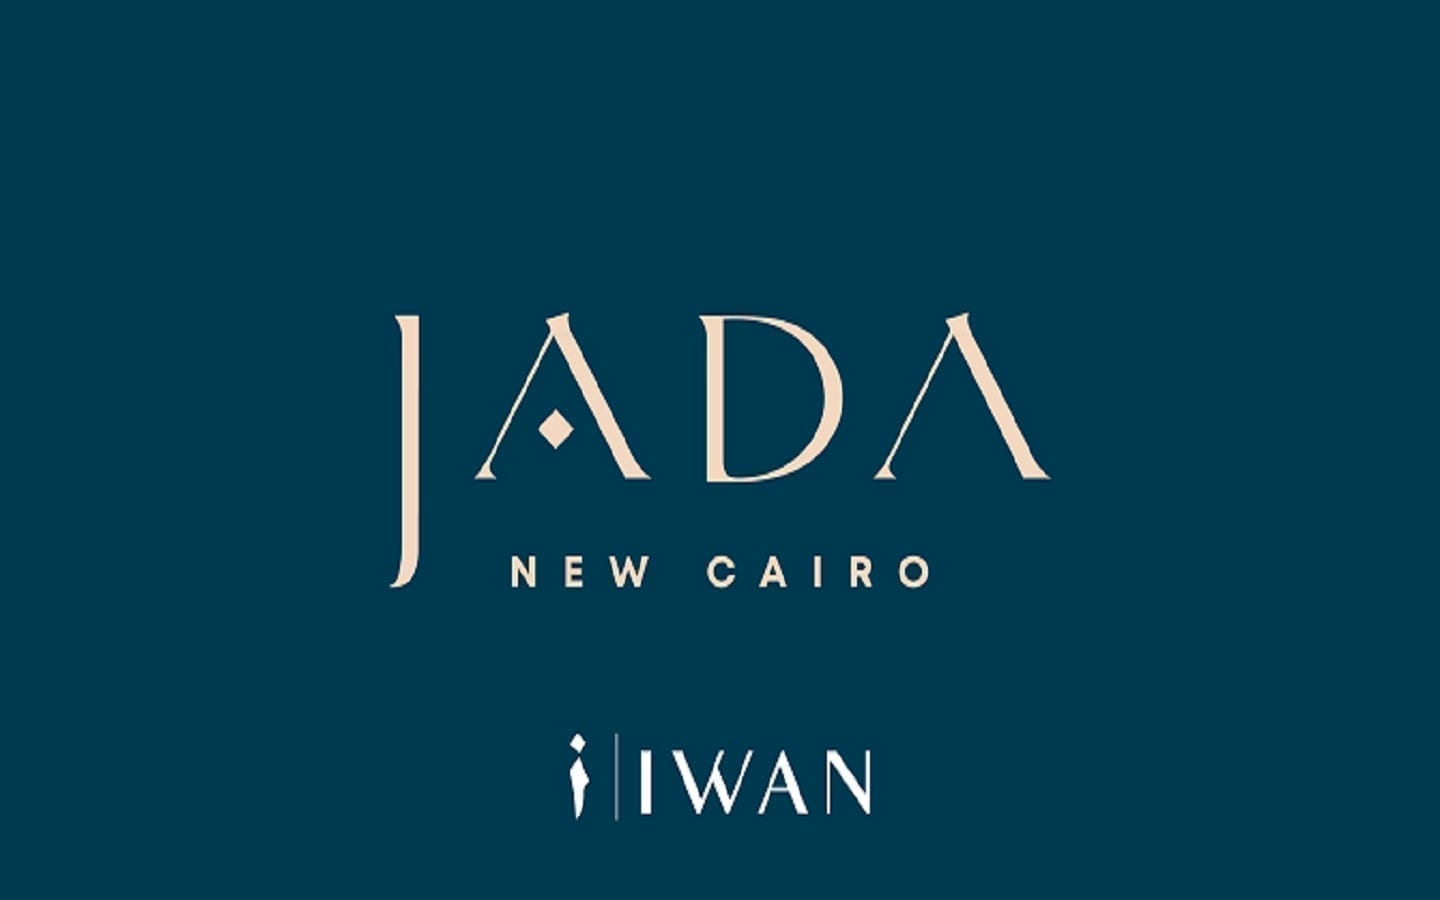 Jada Iwan New Cairo - Jada Iwan East Compound - Jada Apartments For Sale - Compound Villa in New Cairo - Villas for sale - 8 Gates Real Estate Egypt - جادة ايوان القاهرة الجديدة - نيو كايرو ايوان